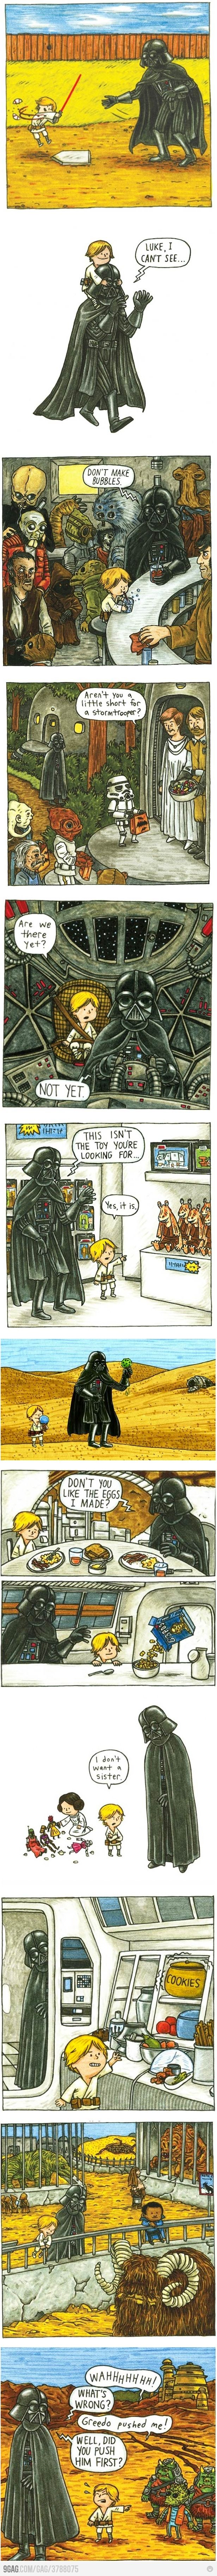 If Vader had been a better dad @chatz_ you have to check this out. This is hilarious on so many levels.